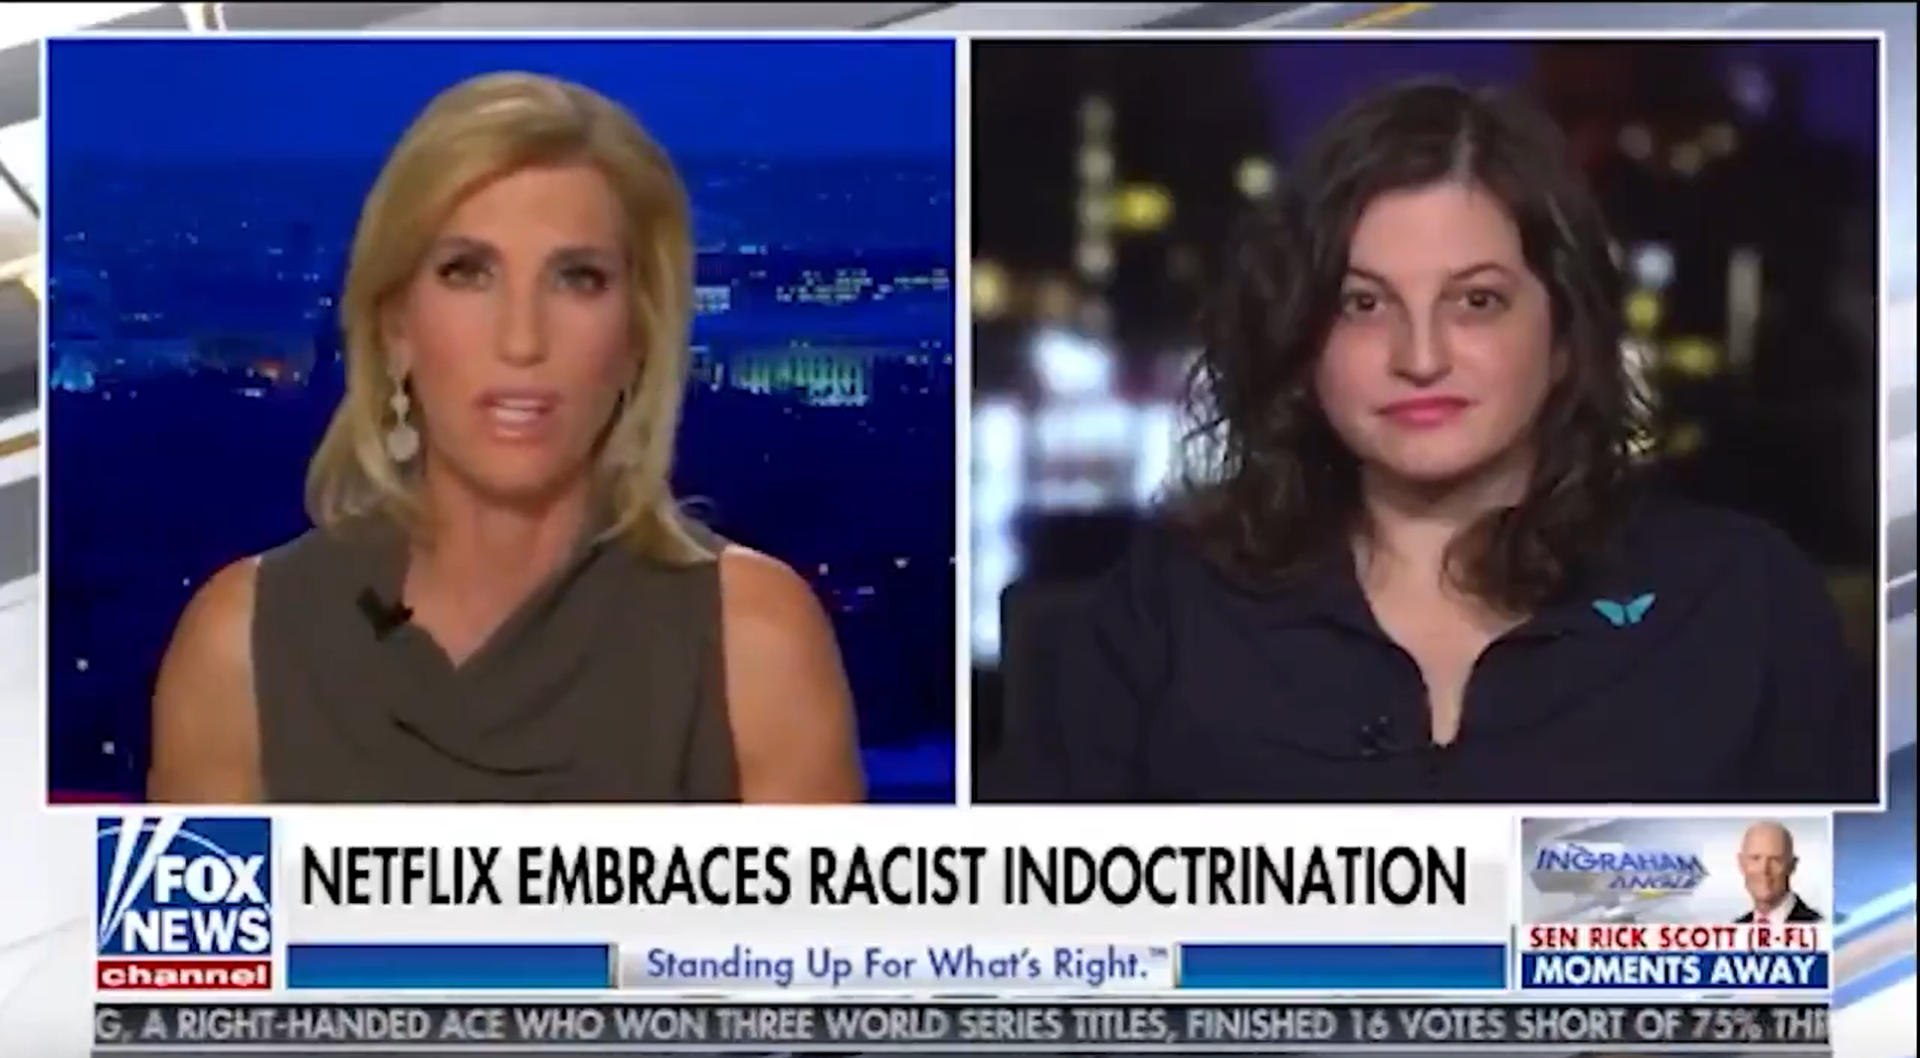 WATCH: Libby Emmons takes aim at Netflix and Ibram Kendi over critical race theory